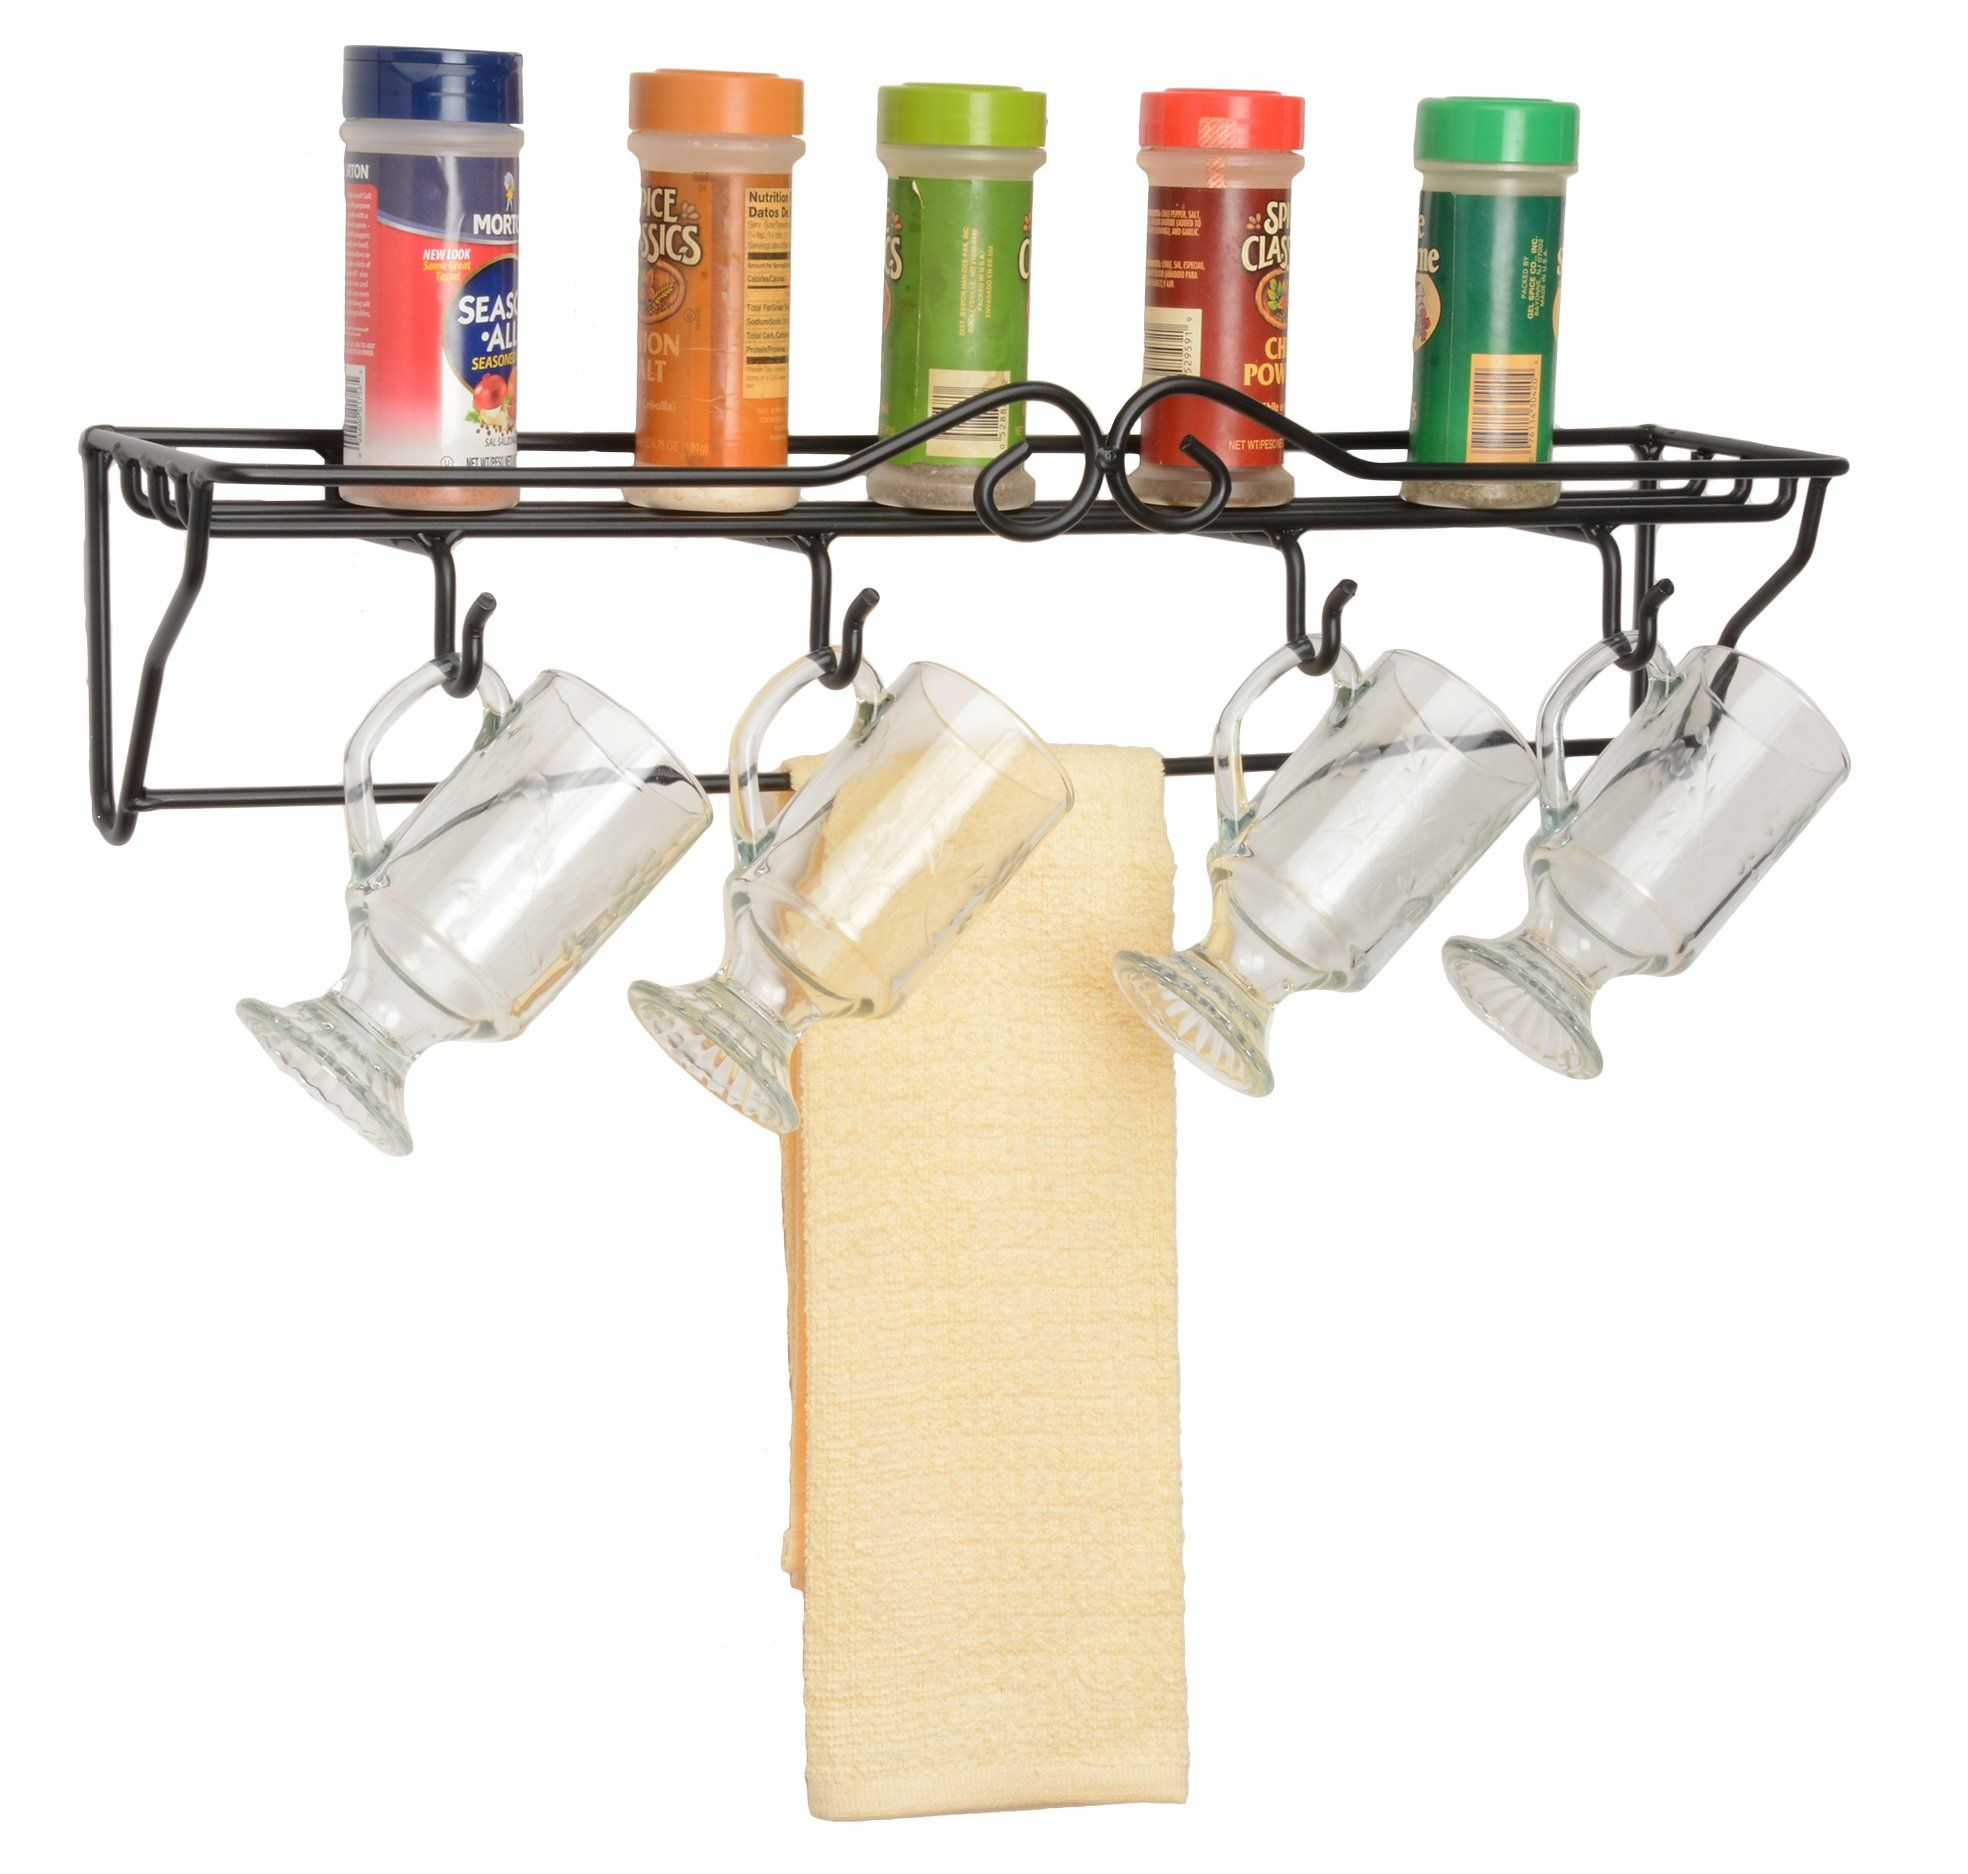 4 MUG SINGLE SHELF RACK - Wrought Iron Wall Mount Organizer | Iron ...